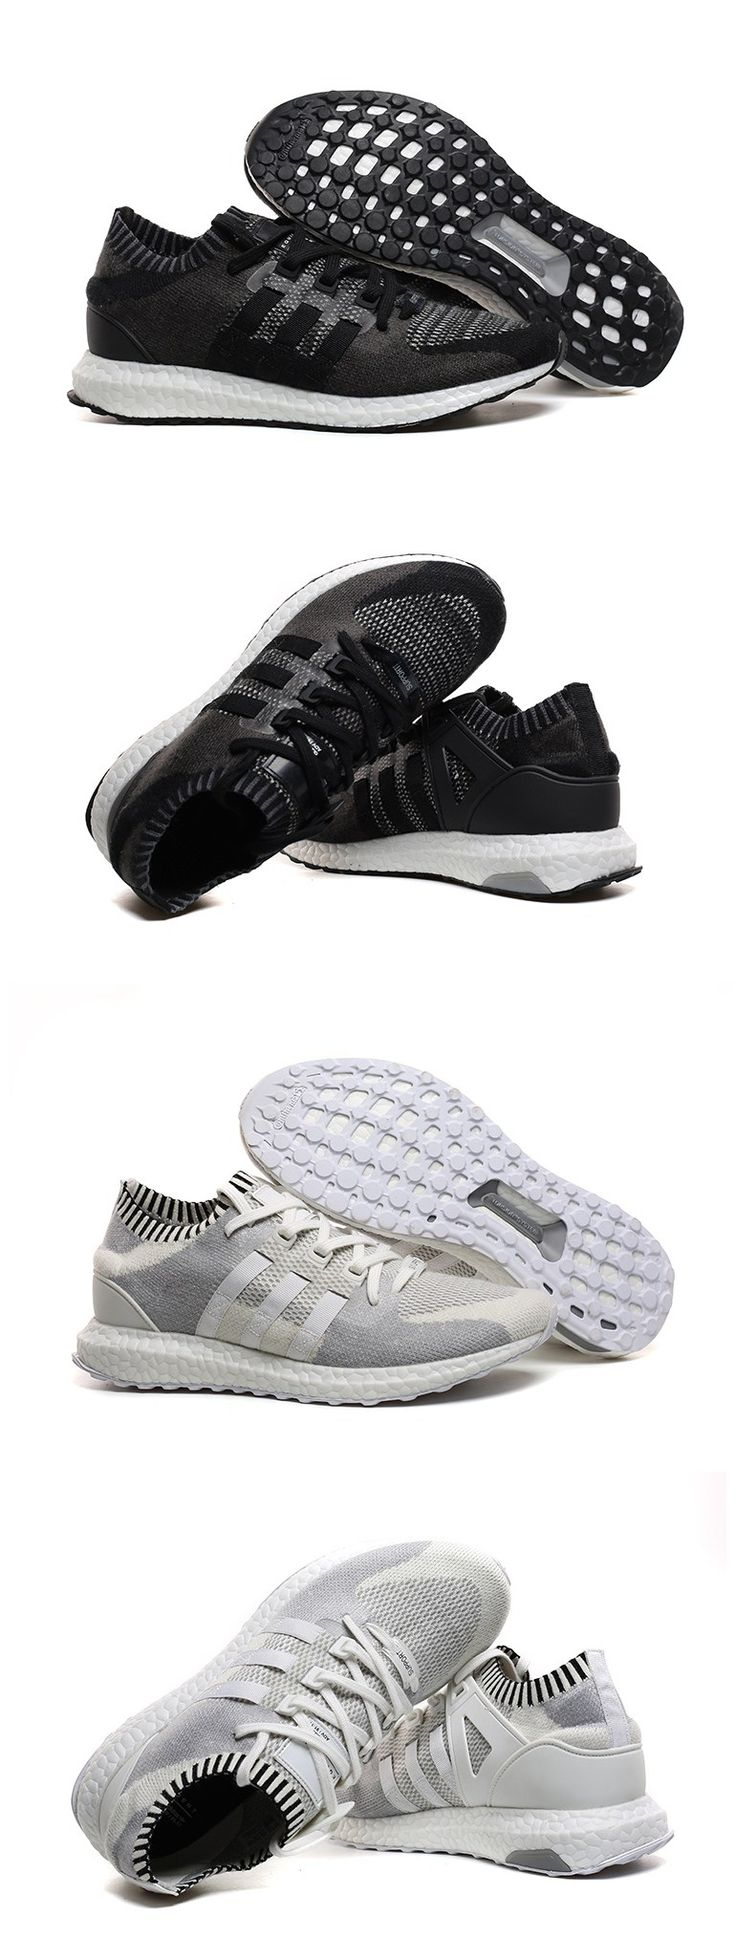 Adidas Pure Wool Ultra Boost Free Shipping Black and White